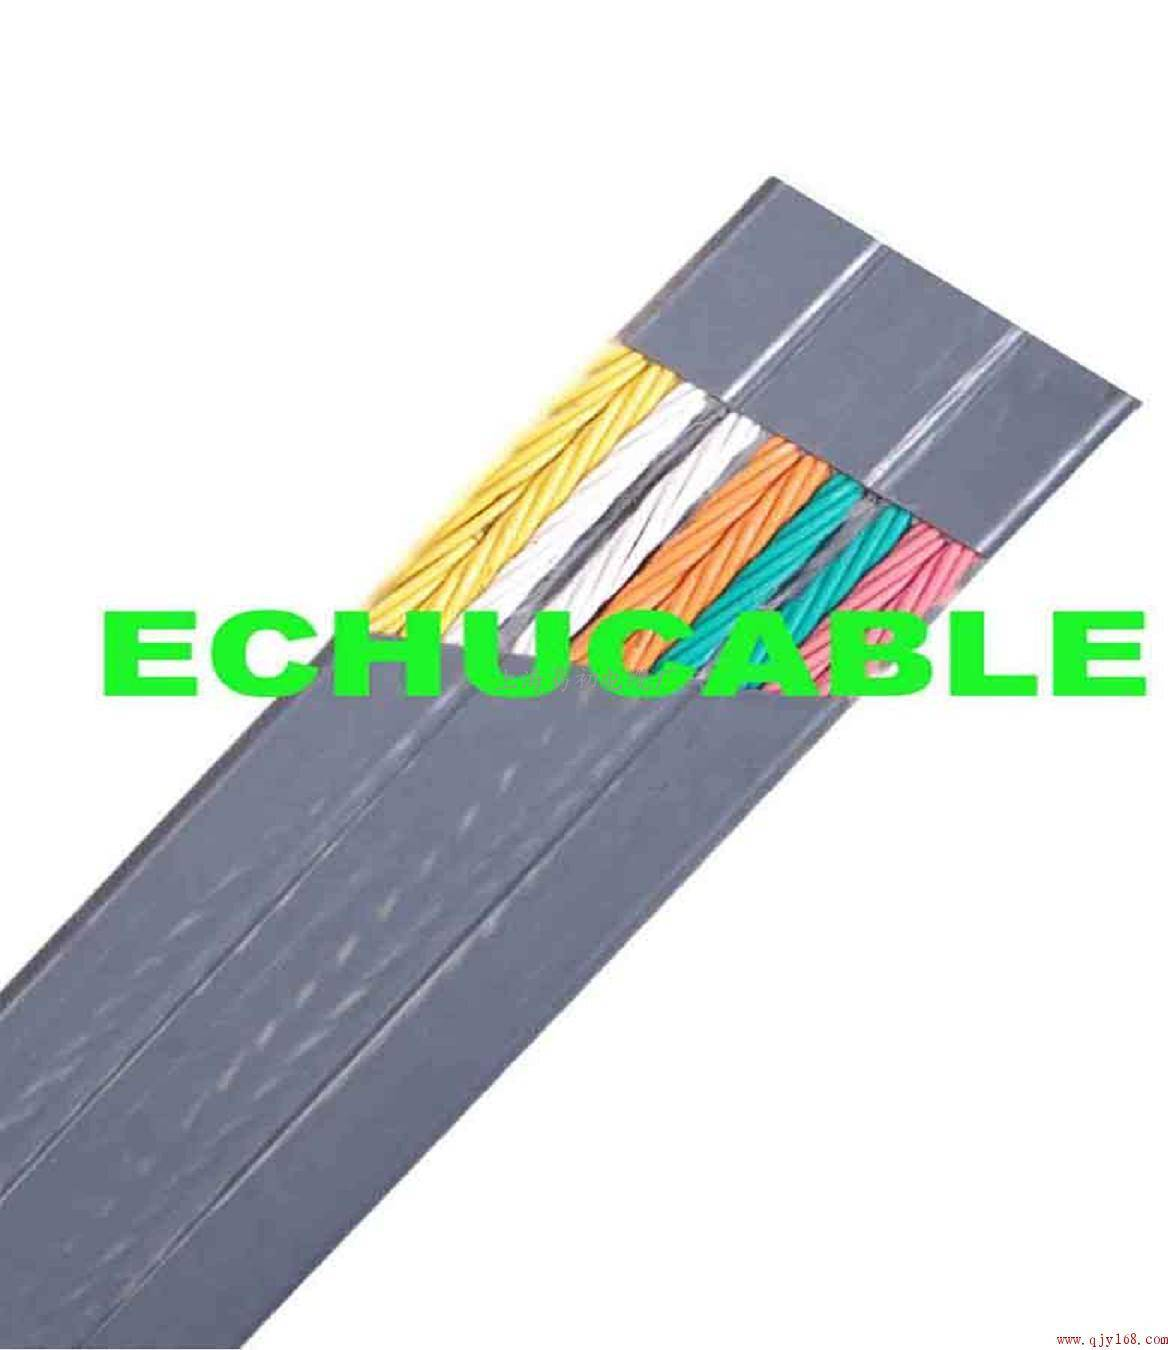 Flat traveling cable with steel supporting